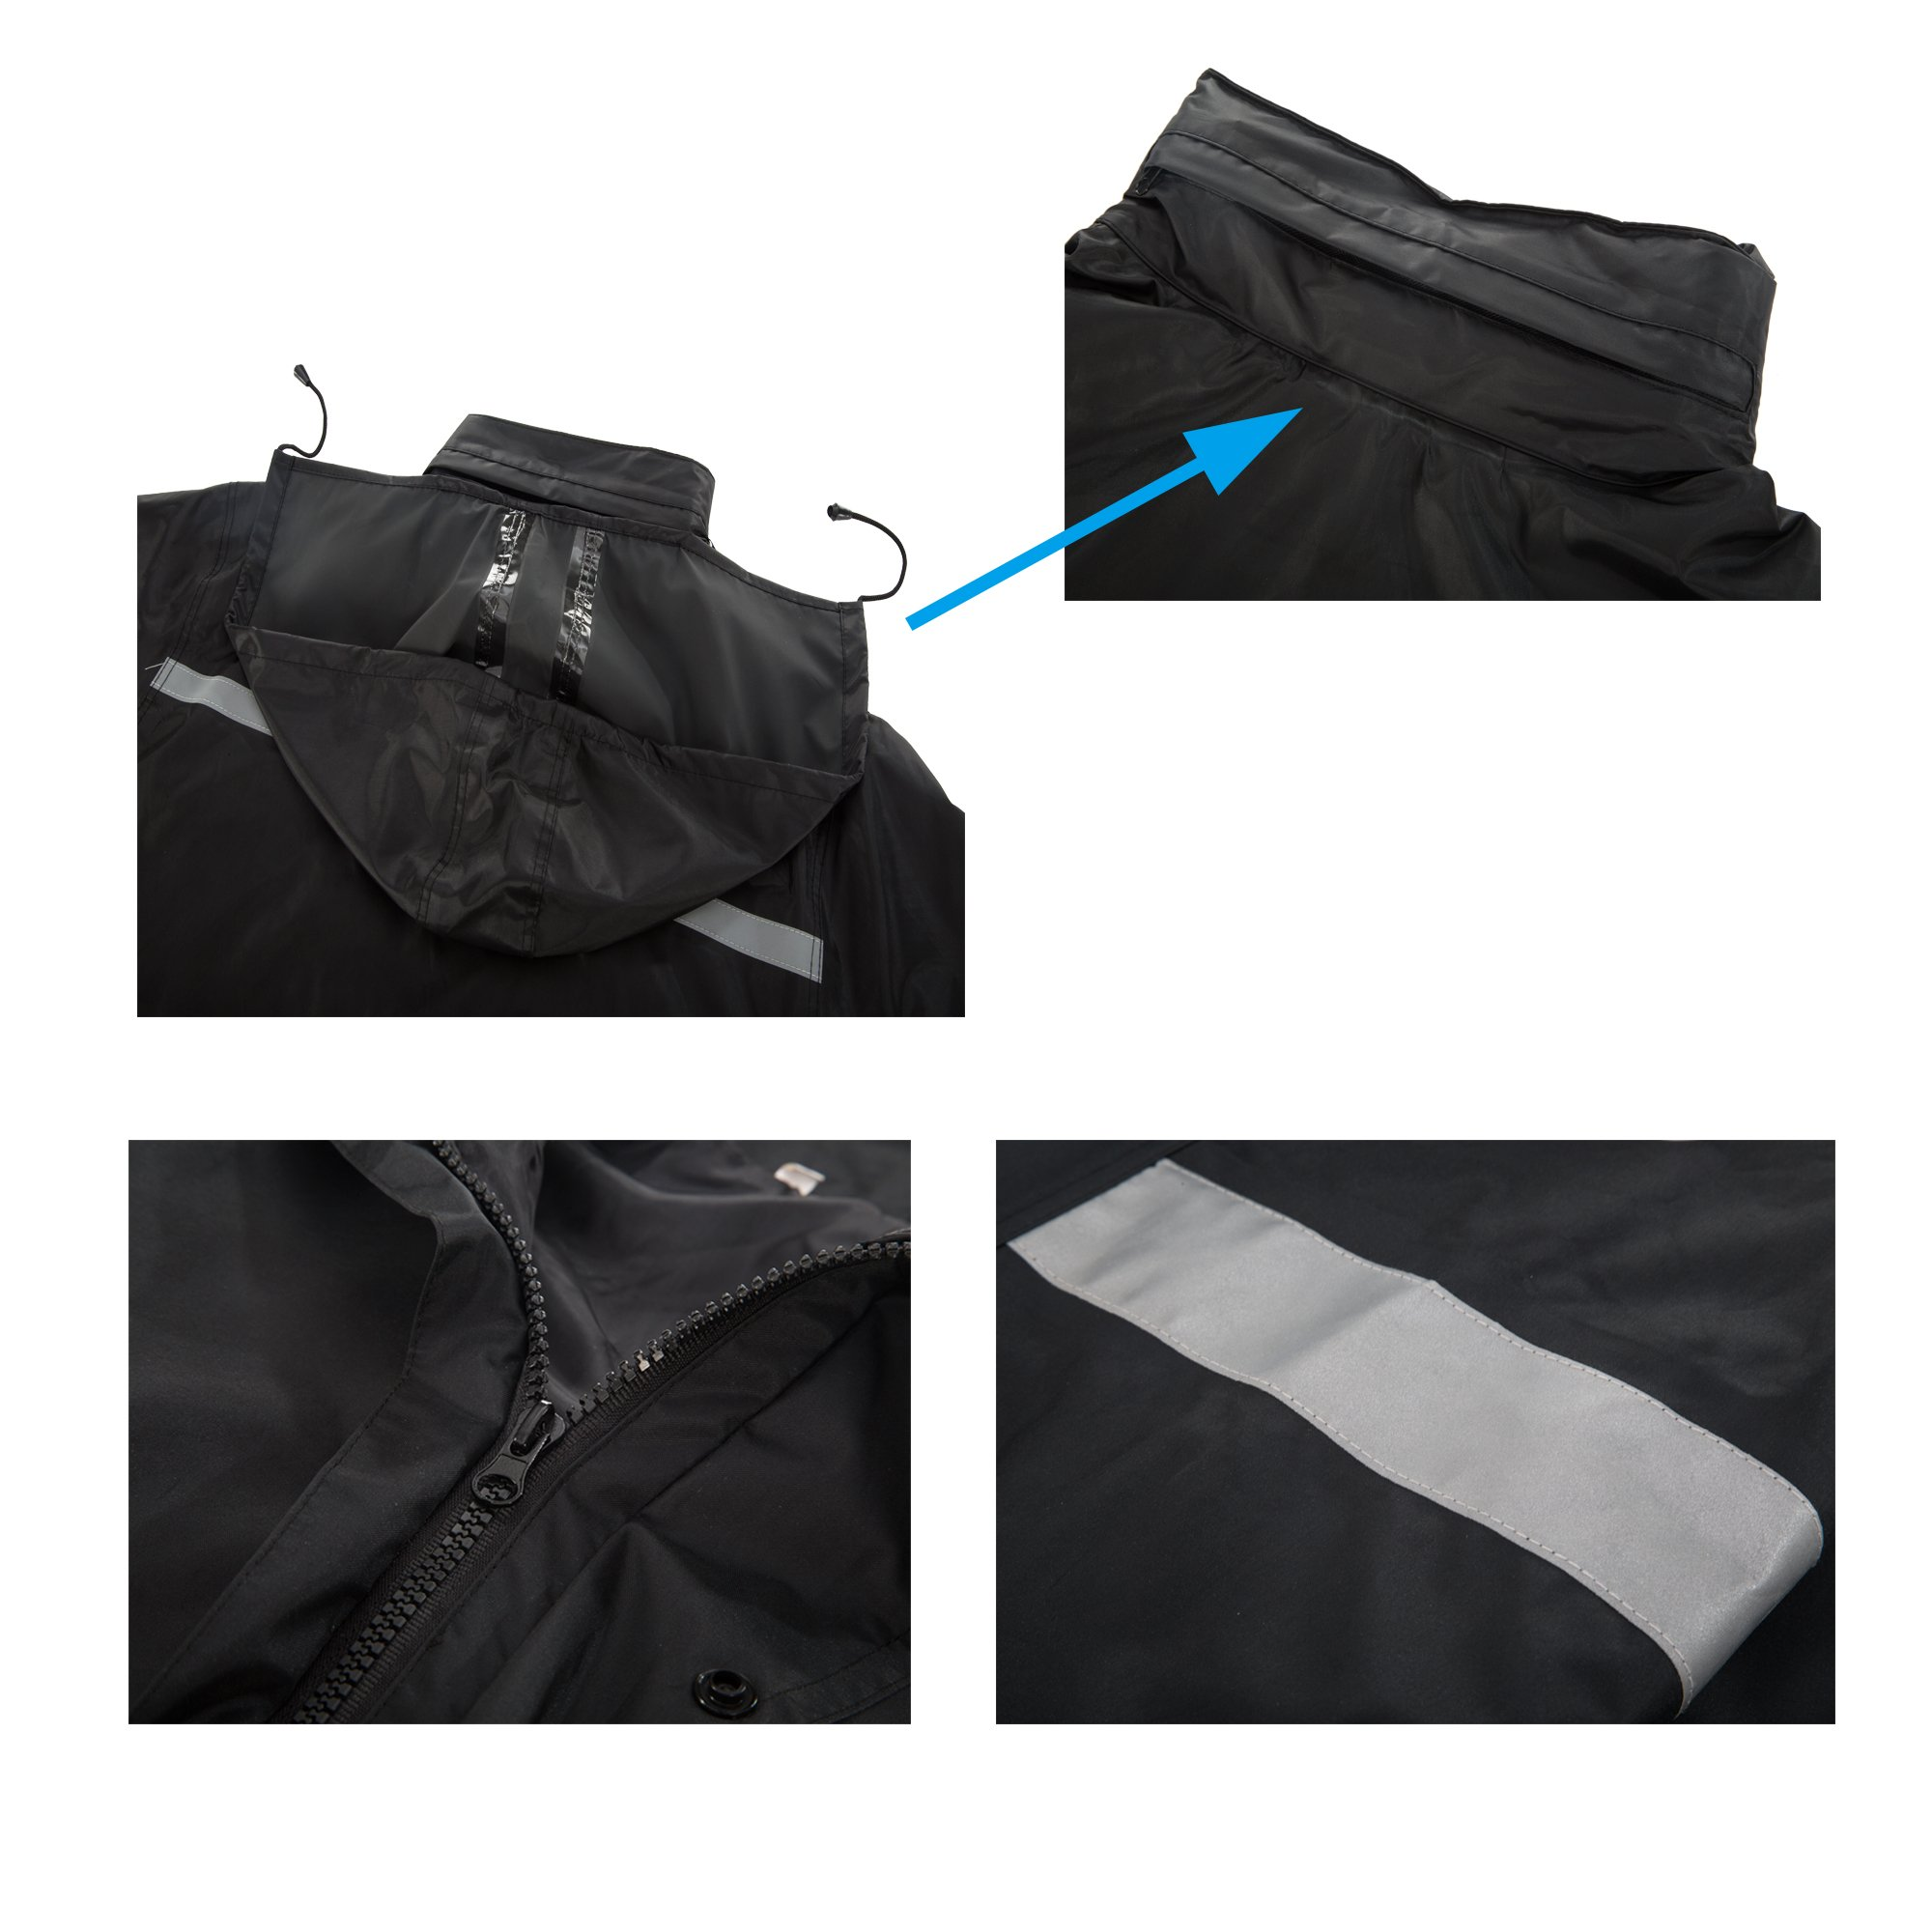 Maiyu Motorcycle Rain Suit Waterproof Rain Jacket and Pants Set 2 Piece Rain Gear For Adult by Maiyu (Image #6)